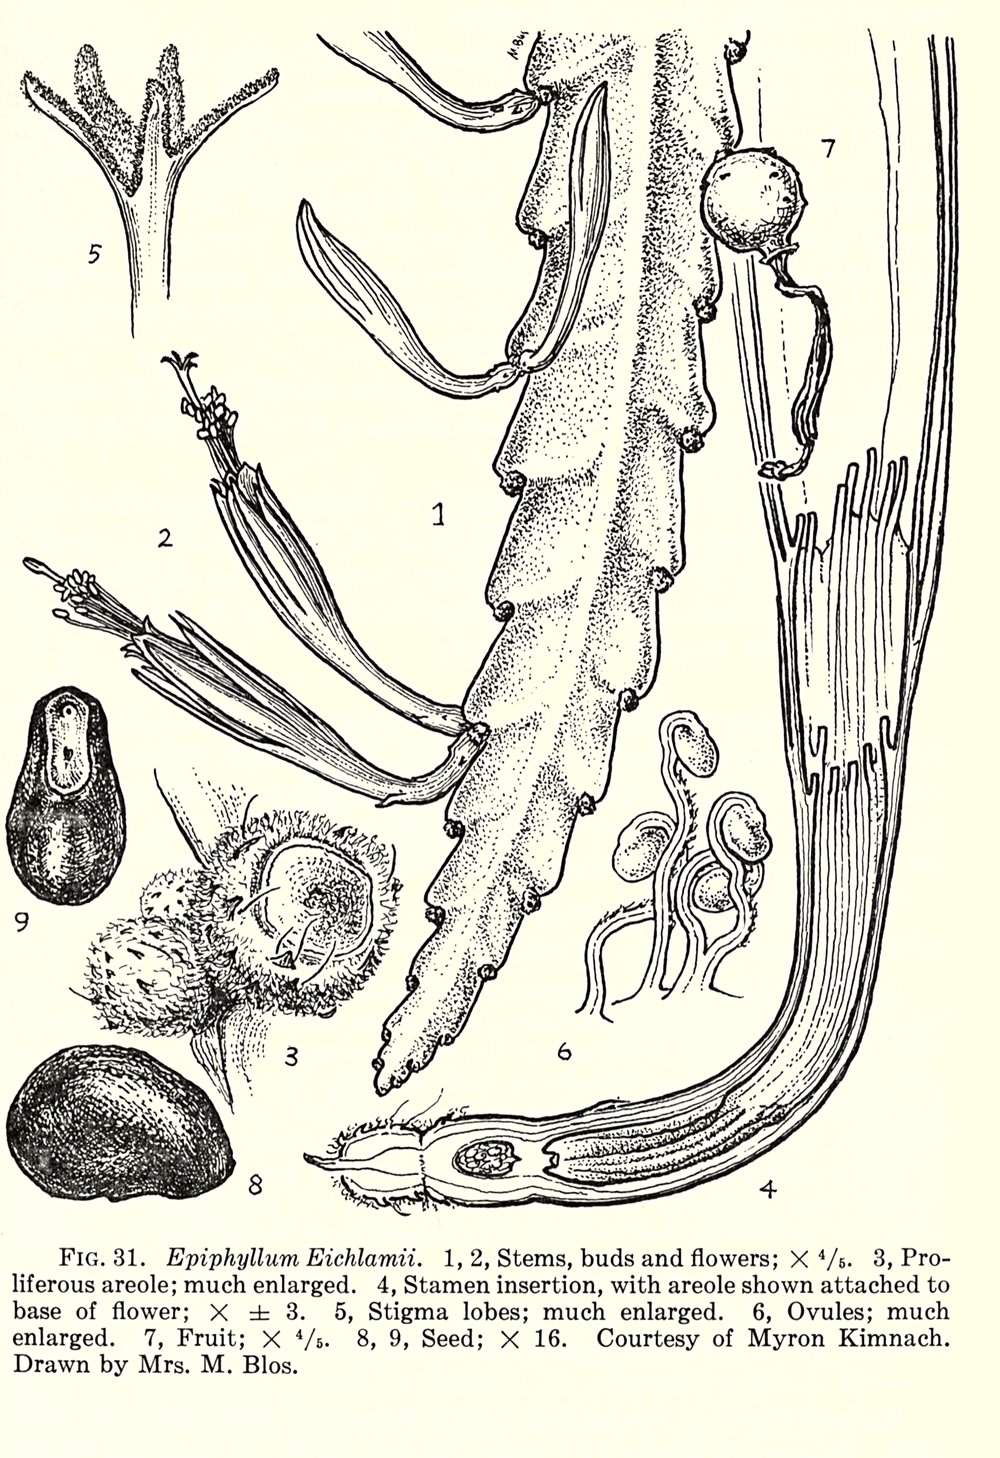 """Disocactus eichlamii  illustration in the """"Flora of Guatemala"""", Part VII, 1962 (Chicago Natural History Museum)."""